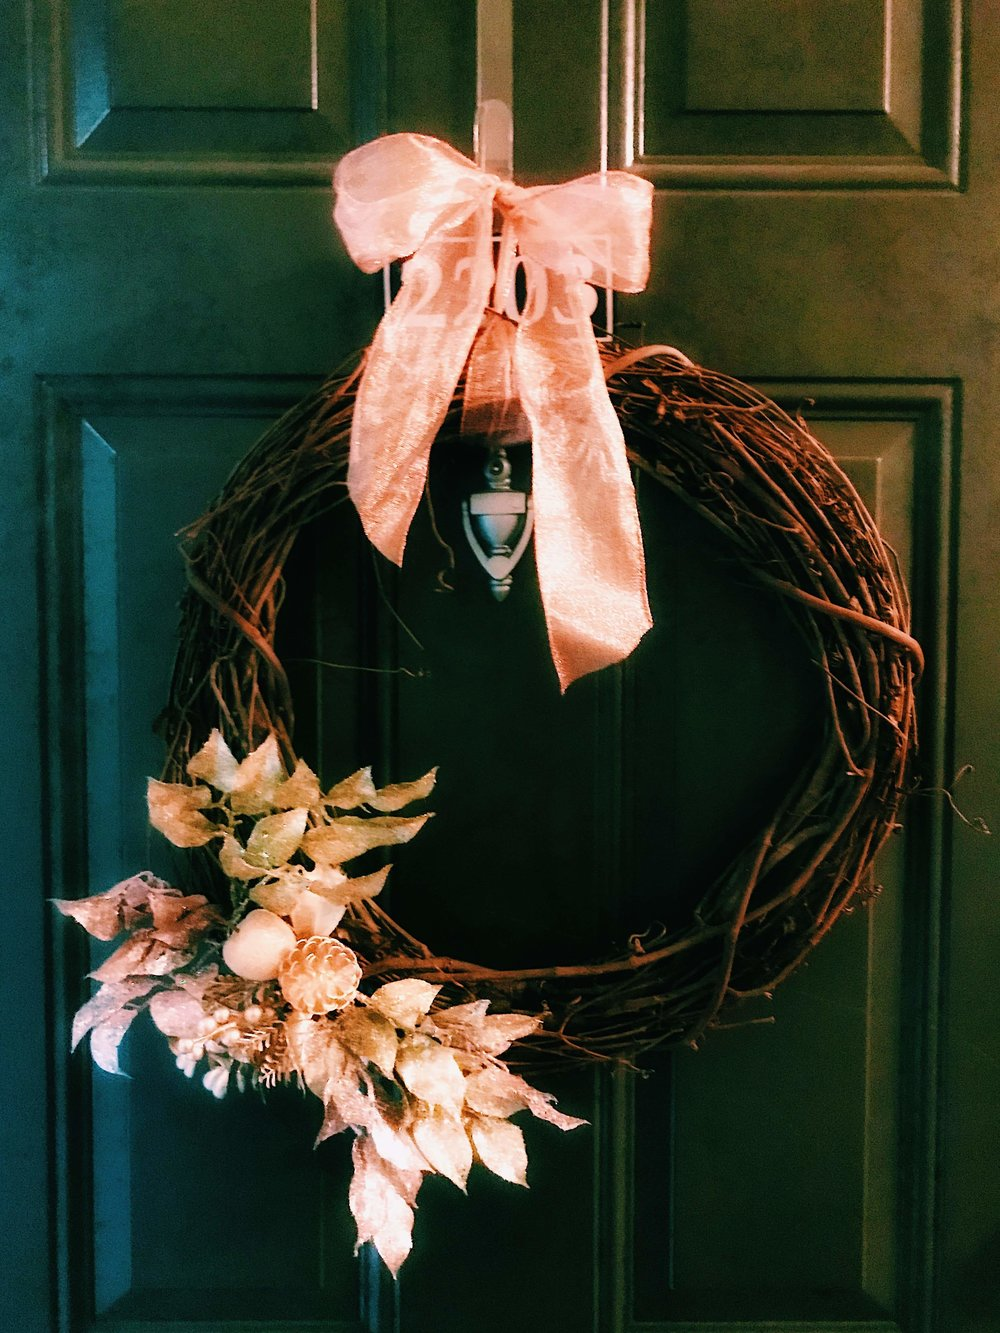 Three Heel Clicks - How to Make a Classy Holiday Wreath for $20 (13).jpg